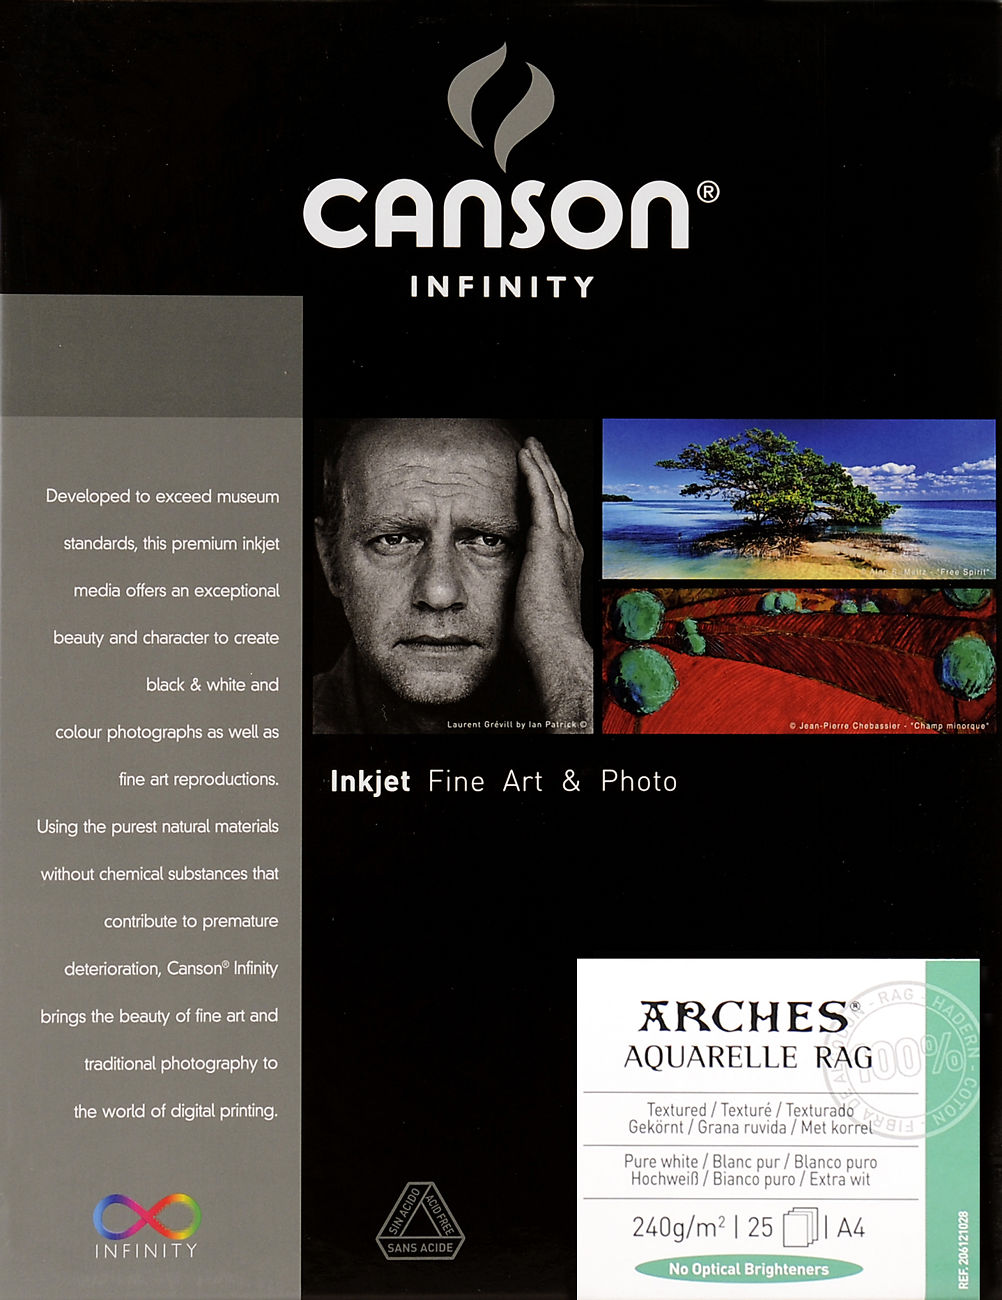 Canson Infinity Aquarelle Rag 240gsm Image